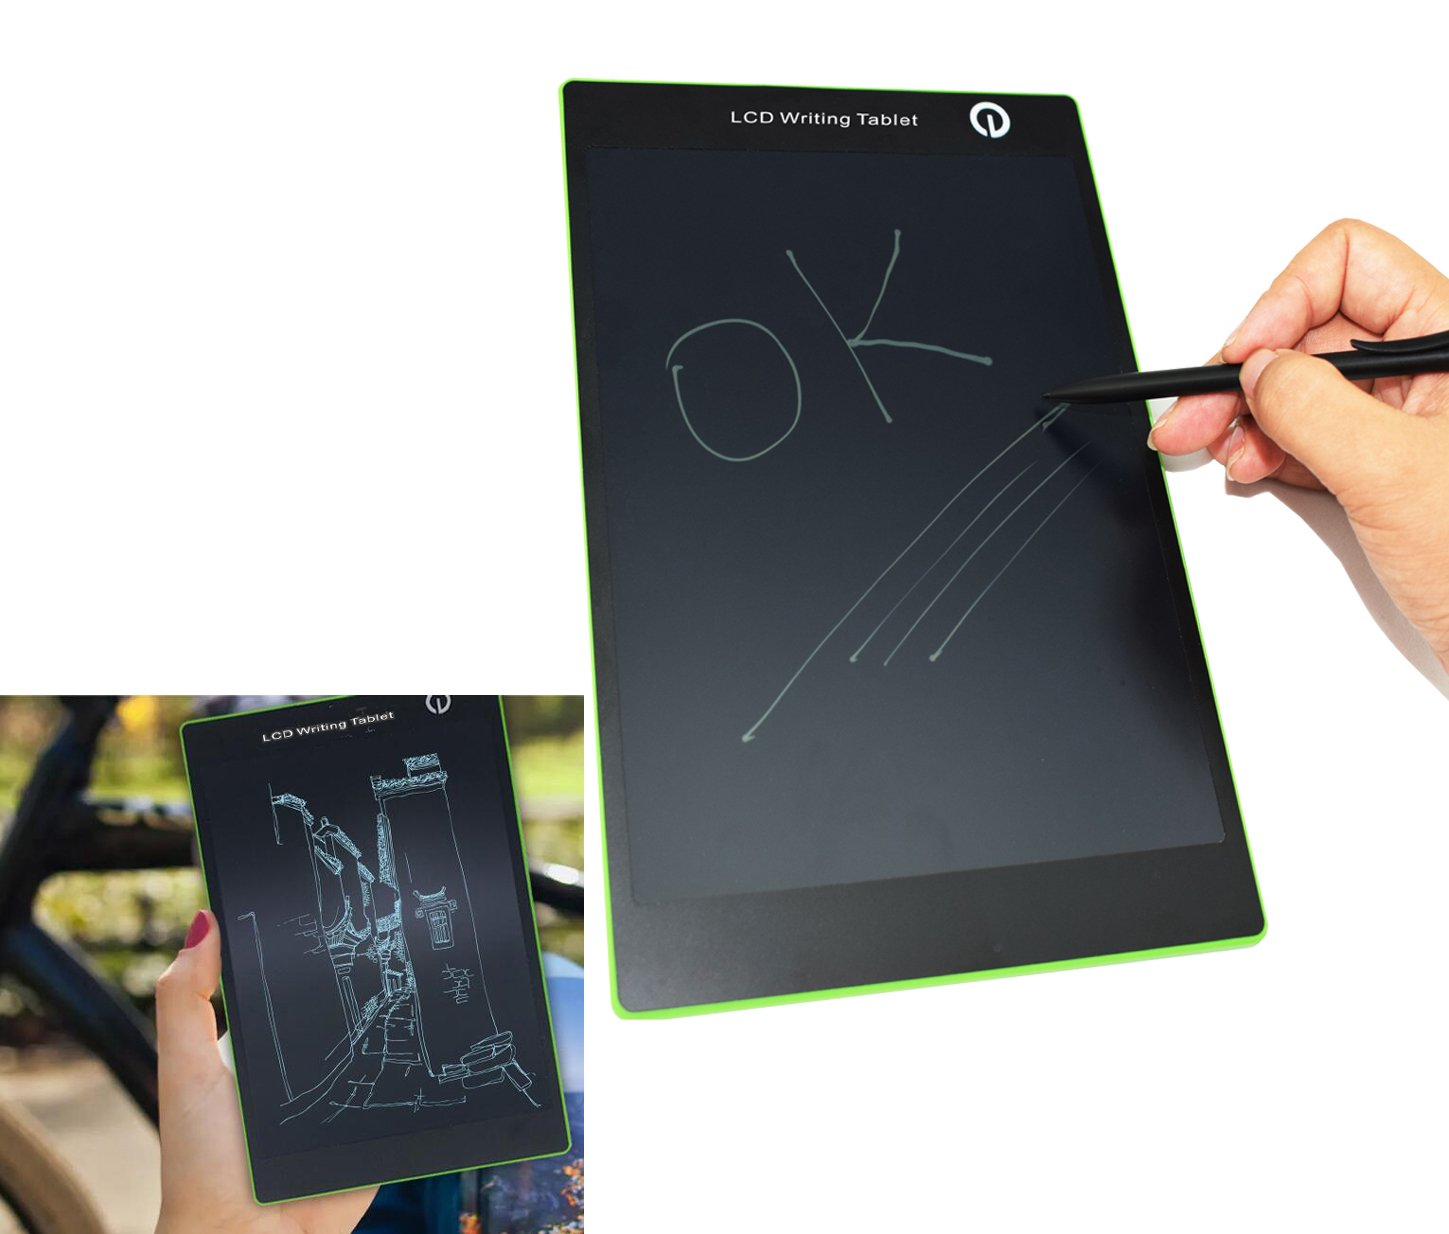 9.7'' LCD Writing Tablet, Best Paperless Digital Writing Drawing Tool for Adults, Kids And Children at Home, School or Work Office Easy Magic Eraser Easy to use for All Ages